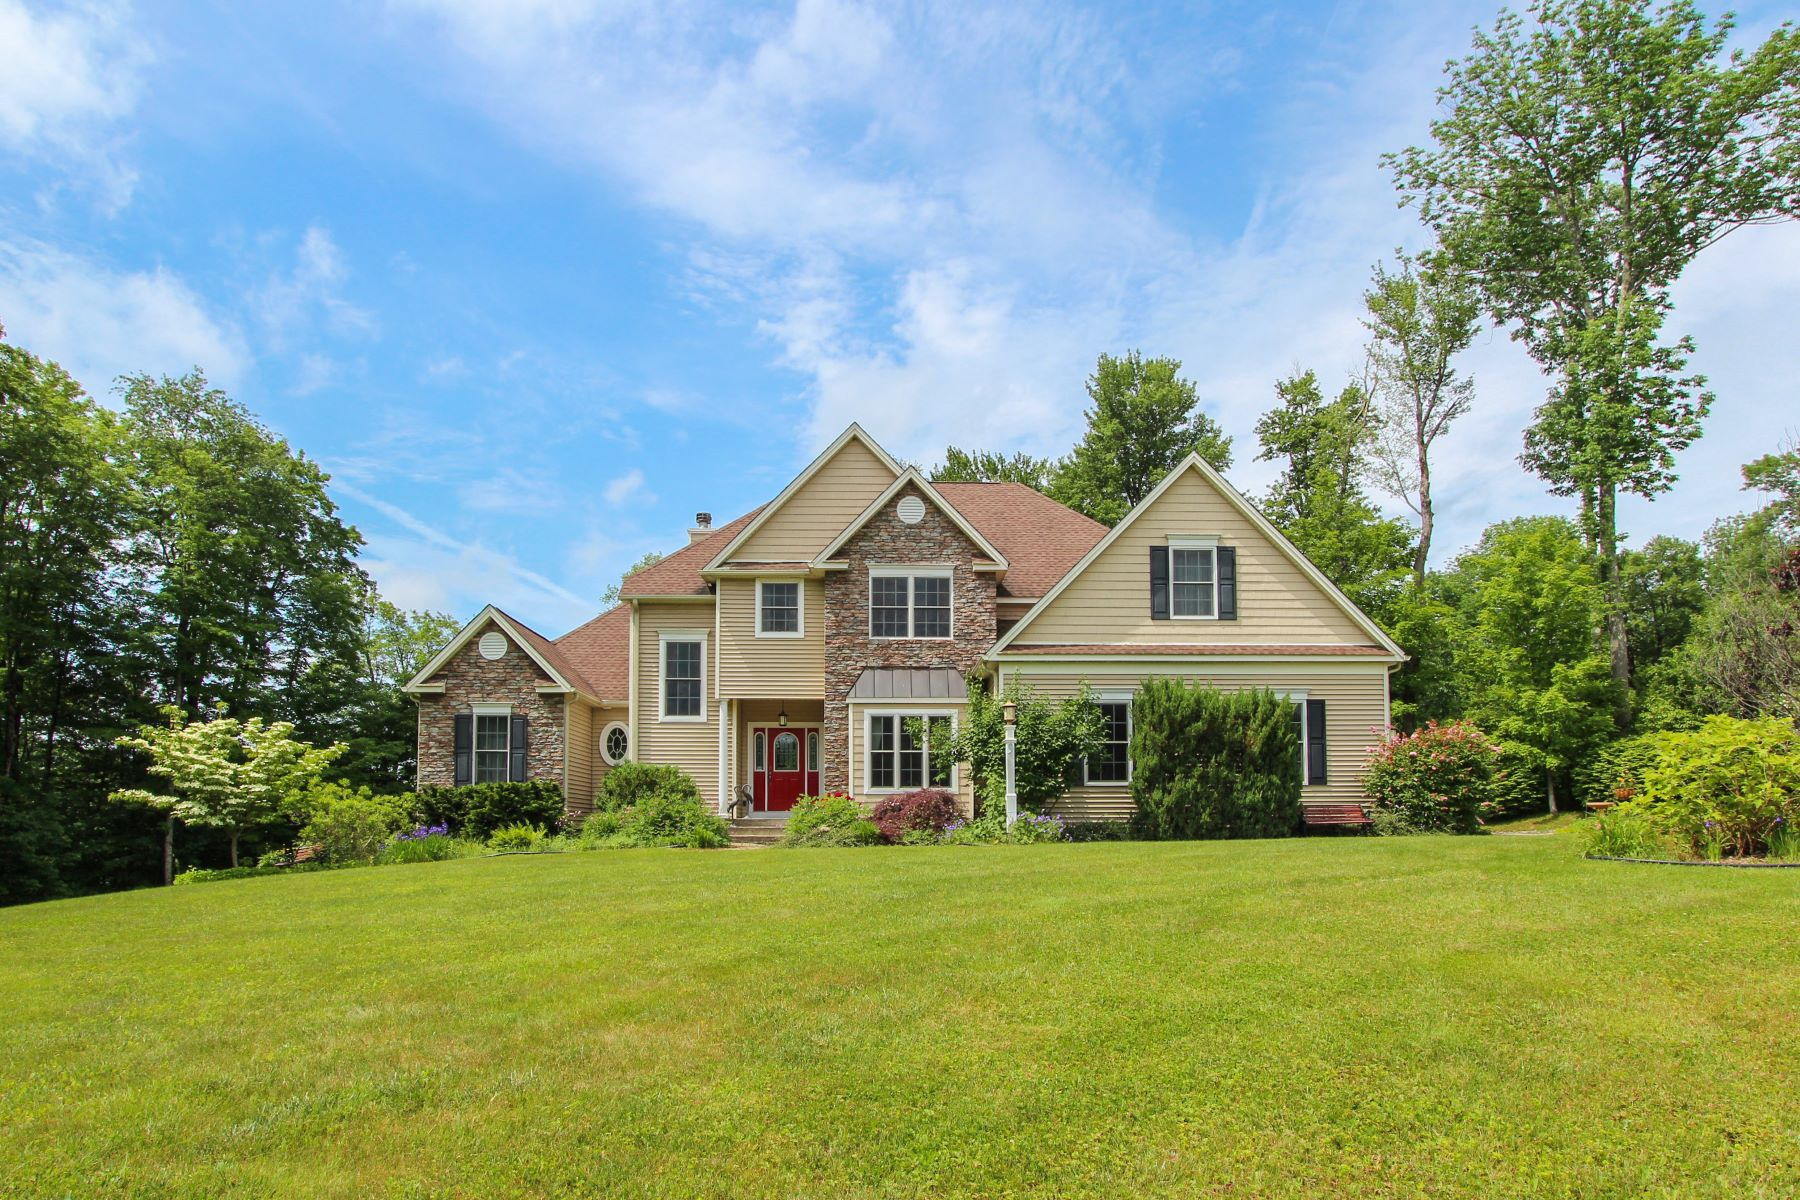 Maison unifamiliale pour l Vente à Timberlake Colonial with Seasonal Views! 9 Falcon Ridge Road Torrington, Connecticut 06790 États-Unis